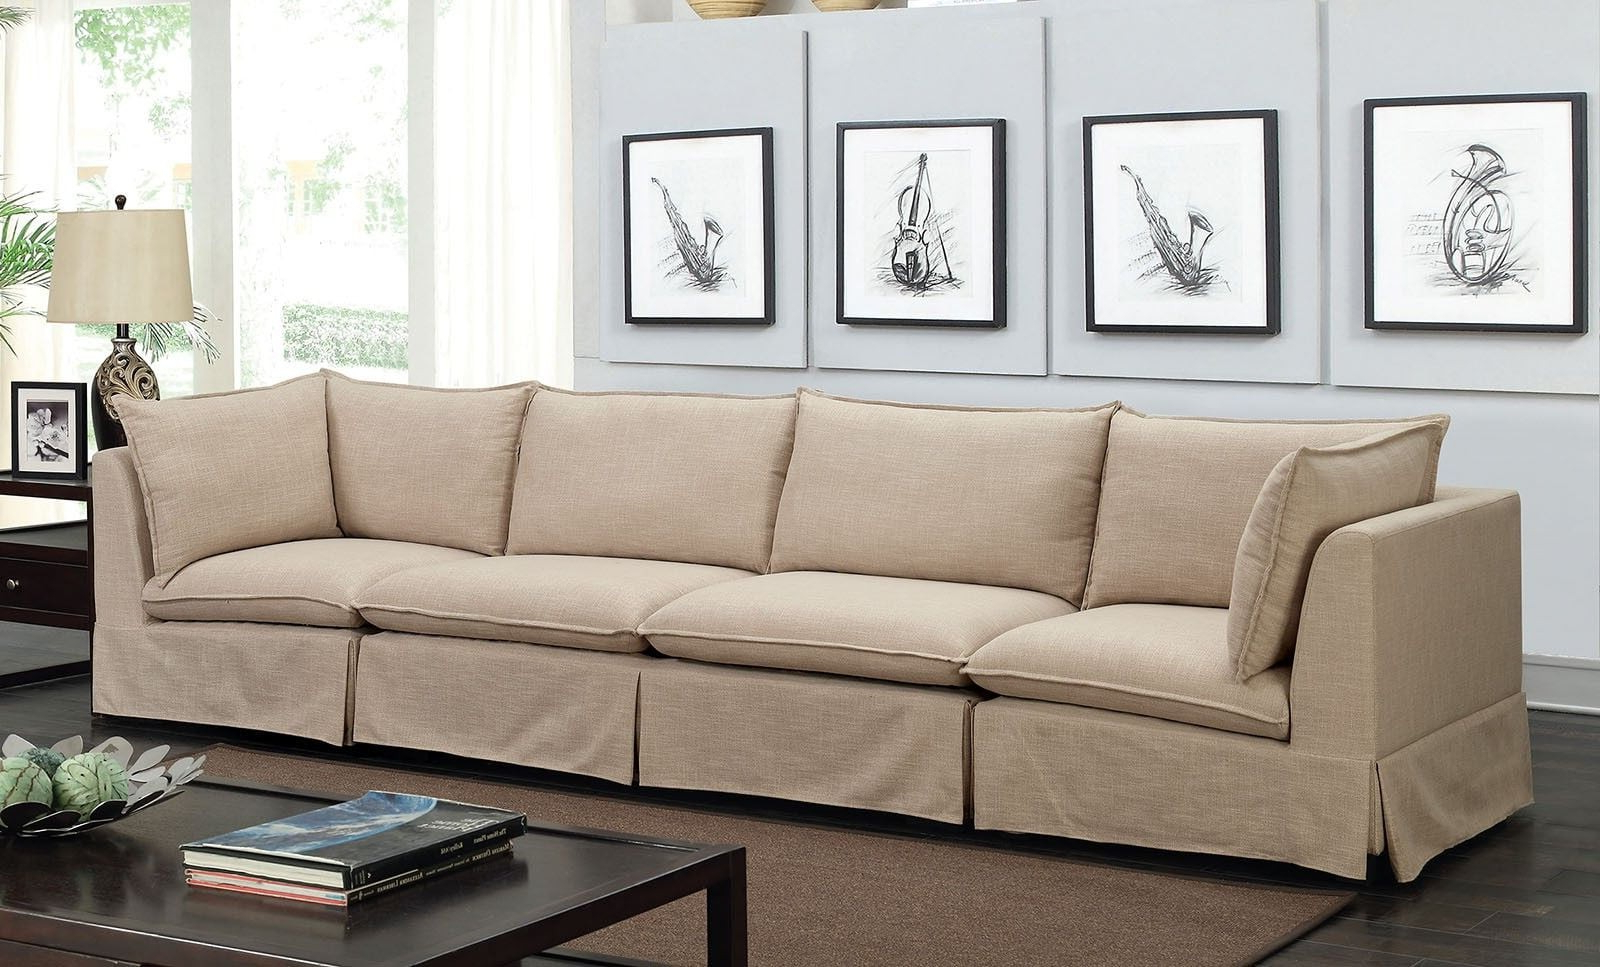 Joelle 3 Piece Beige Sectional From Furniture Of America (View 11 of 20)